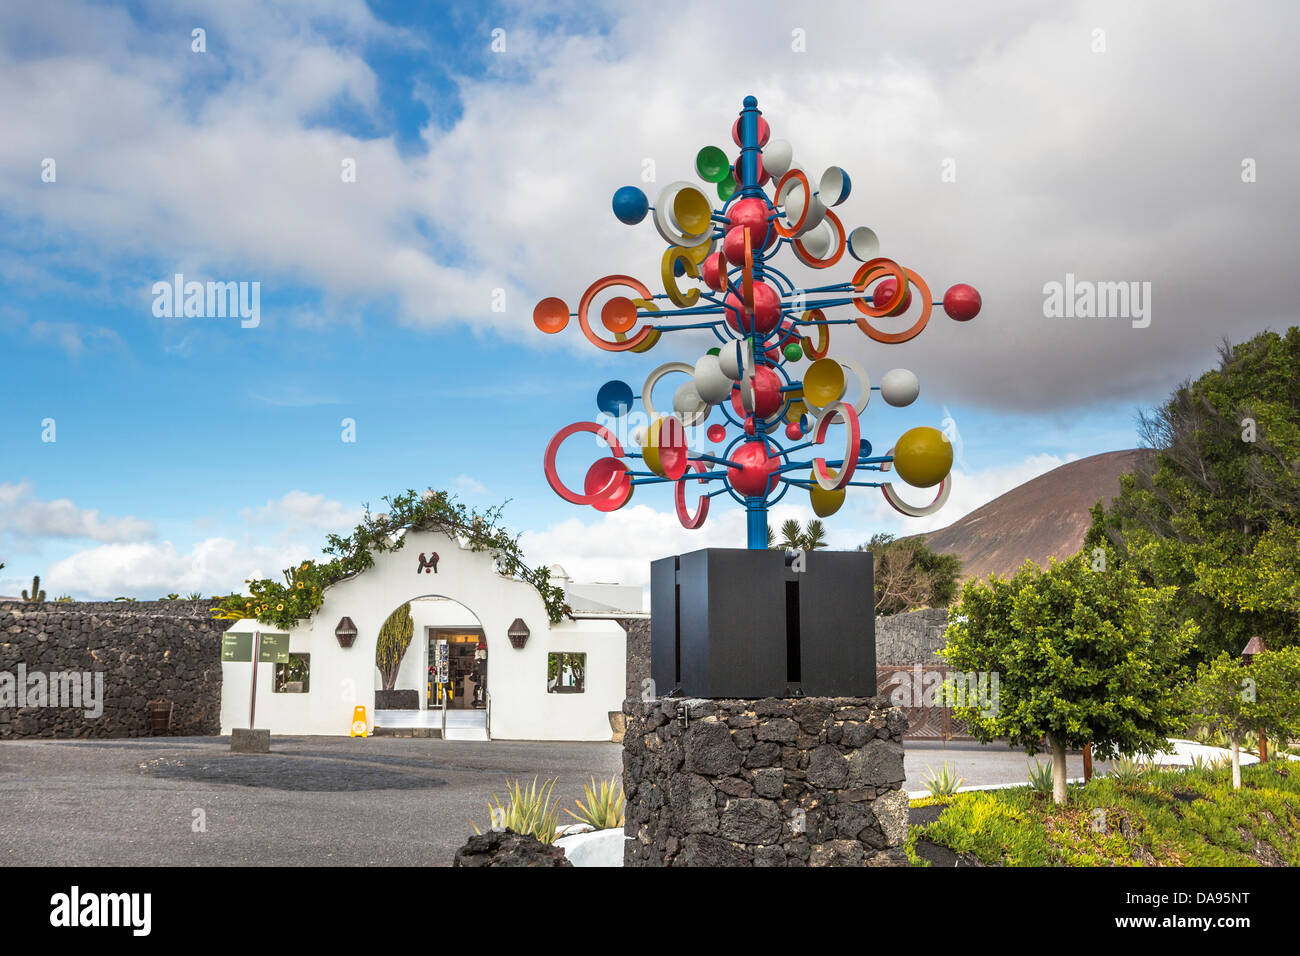 Spain, Europe, Canary Islands, Foundation, Lanzarote, architecture, art, artist, Cesar manrique, colourful, entrance, - Stock Image